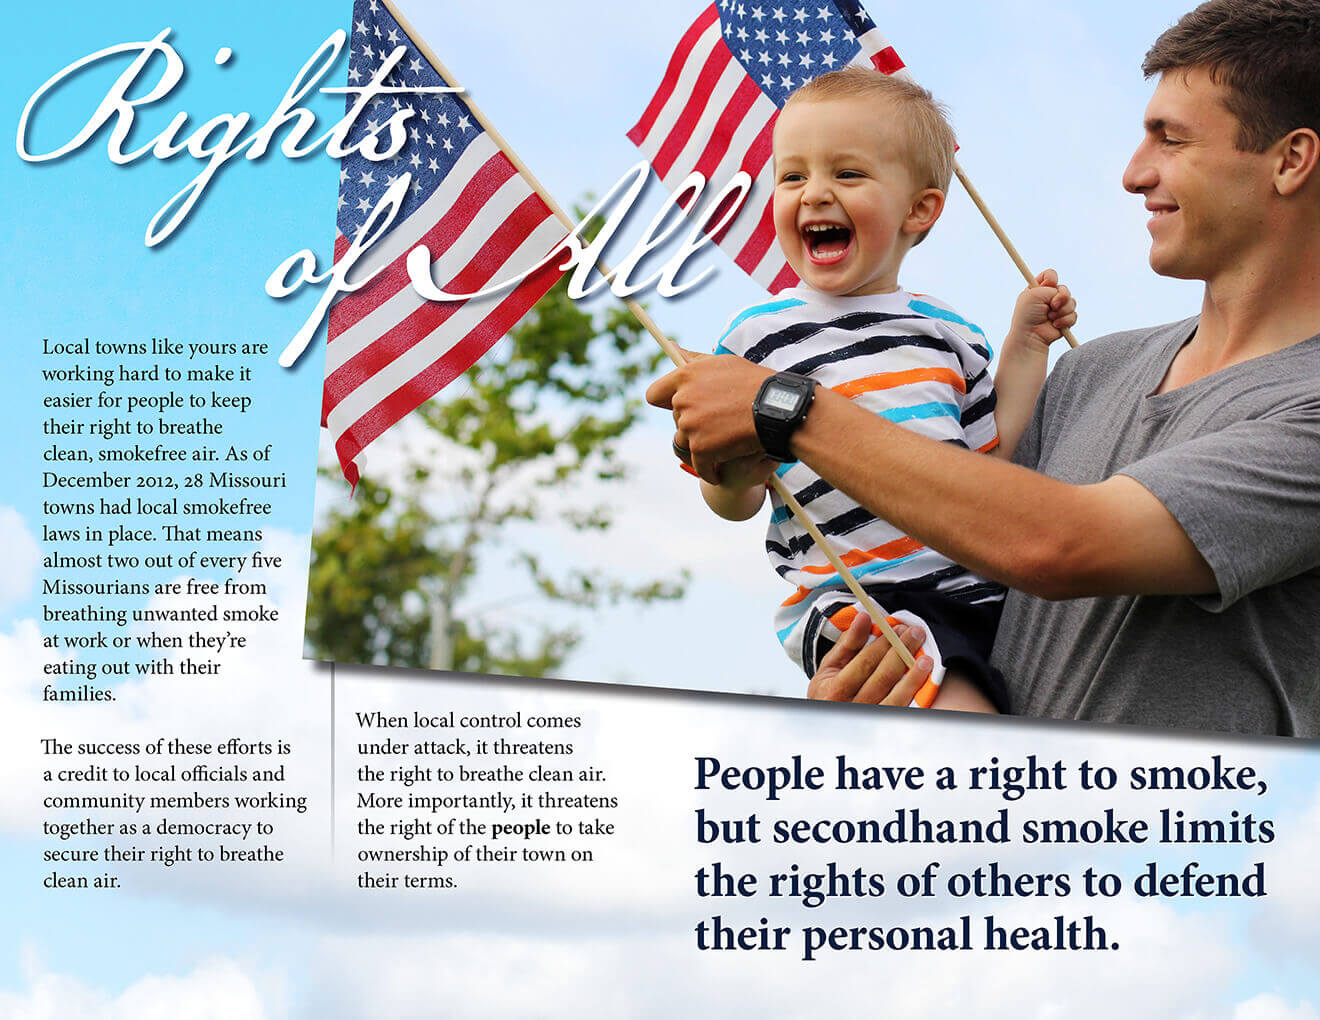 Tobacco Free Missouri Booklet: Rights of All: Man holds boy with American flags. People have a right to smoke tobacco, but secondhand smoke limits the rights of others to defend their personal health.